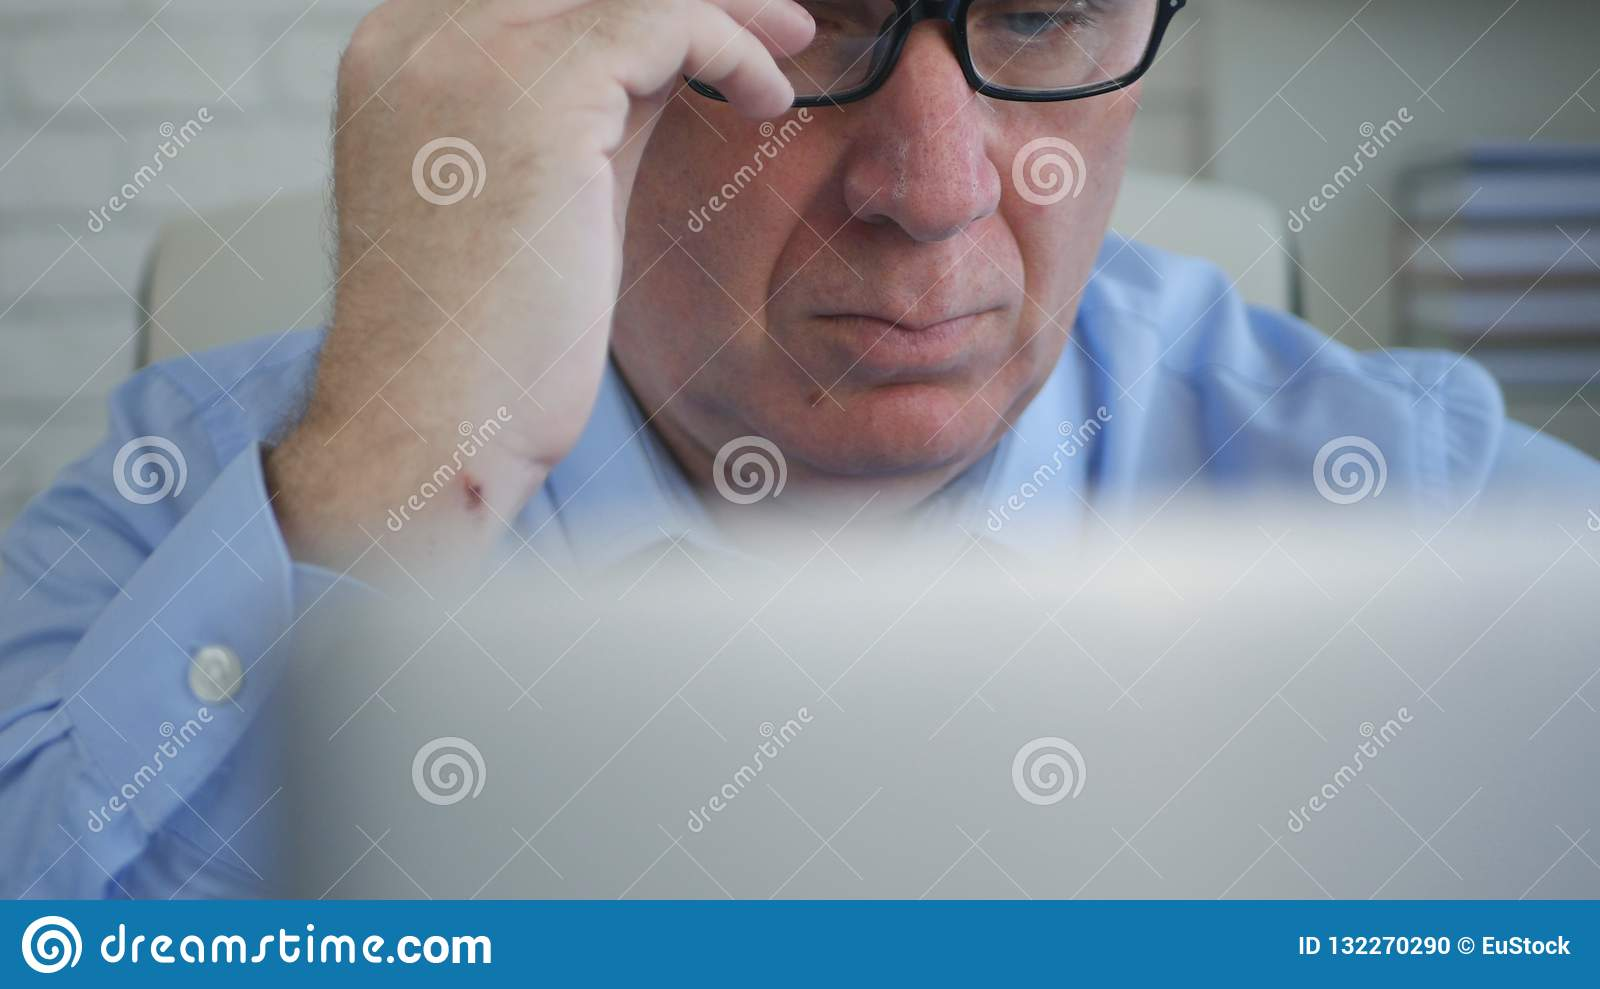 Businessperson In Office Work Using a Laptop make Financial Calculations